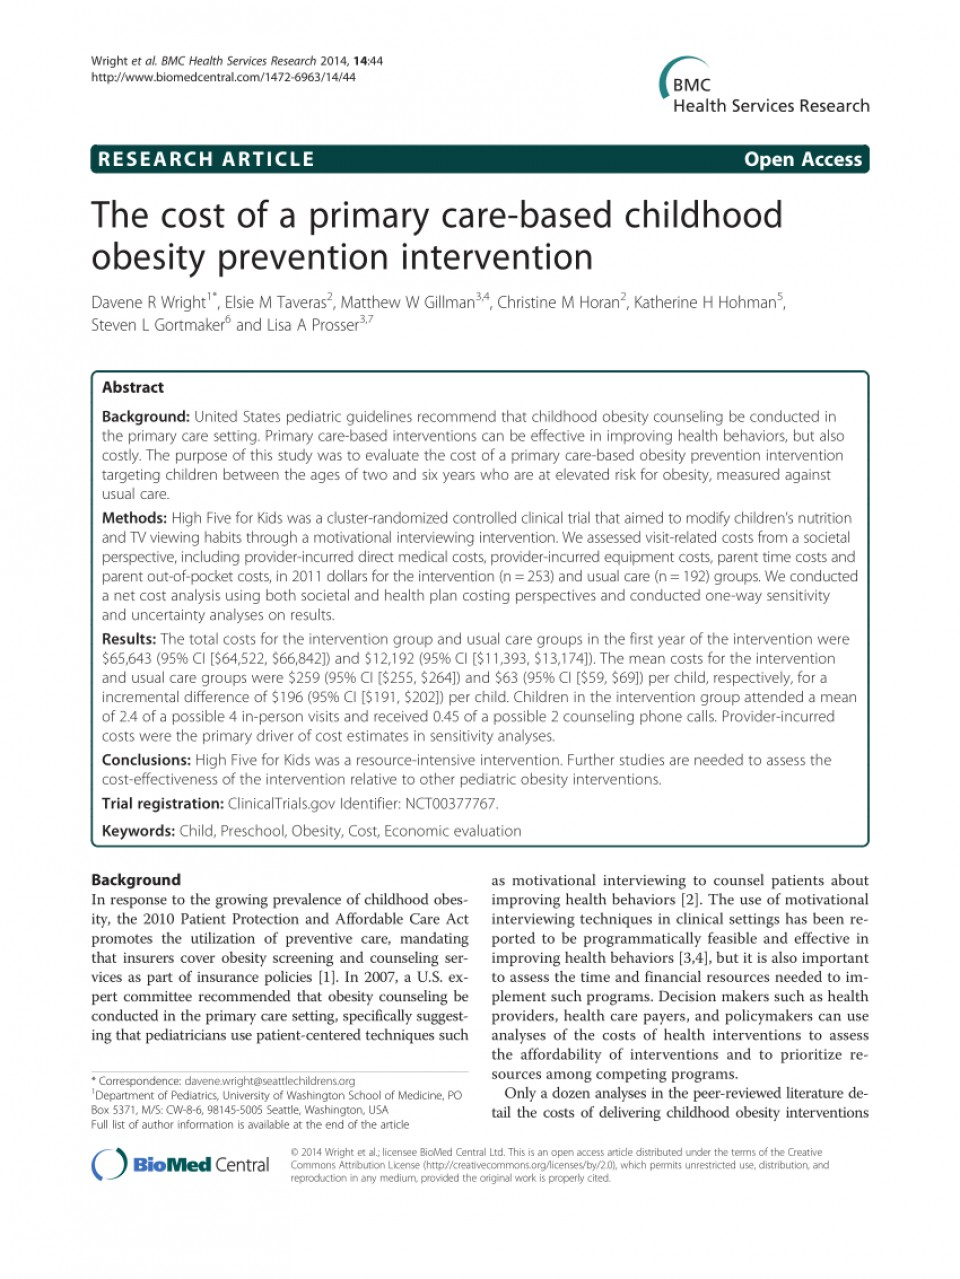 003 Primary Research Article On Childhood Obesity Paper Imposing 960